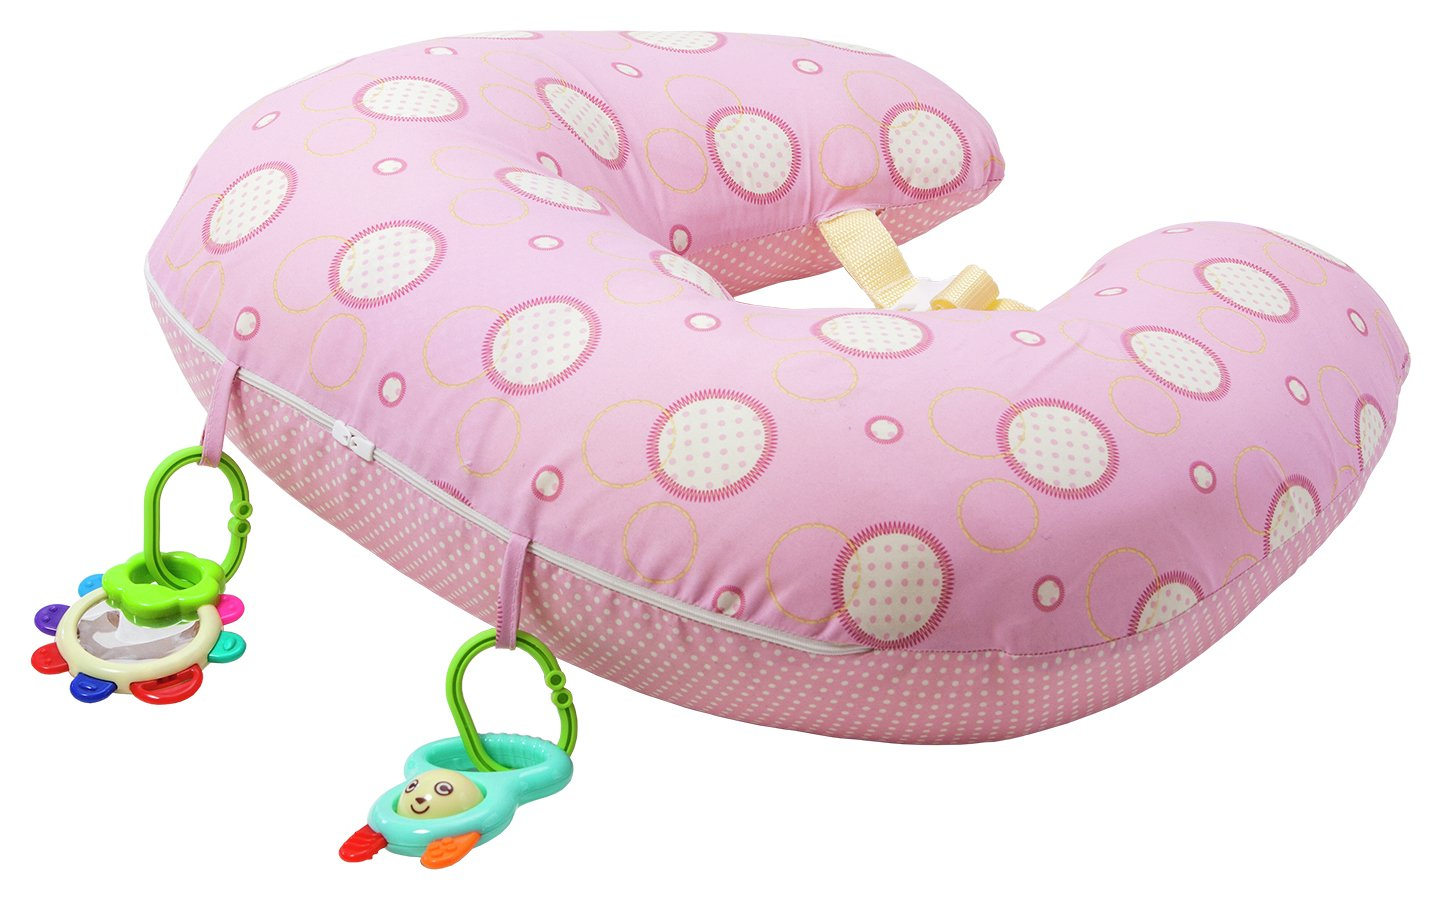 Clevamama Clevacushion 10 in 1 Nursing Pillow - Pink